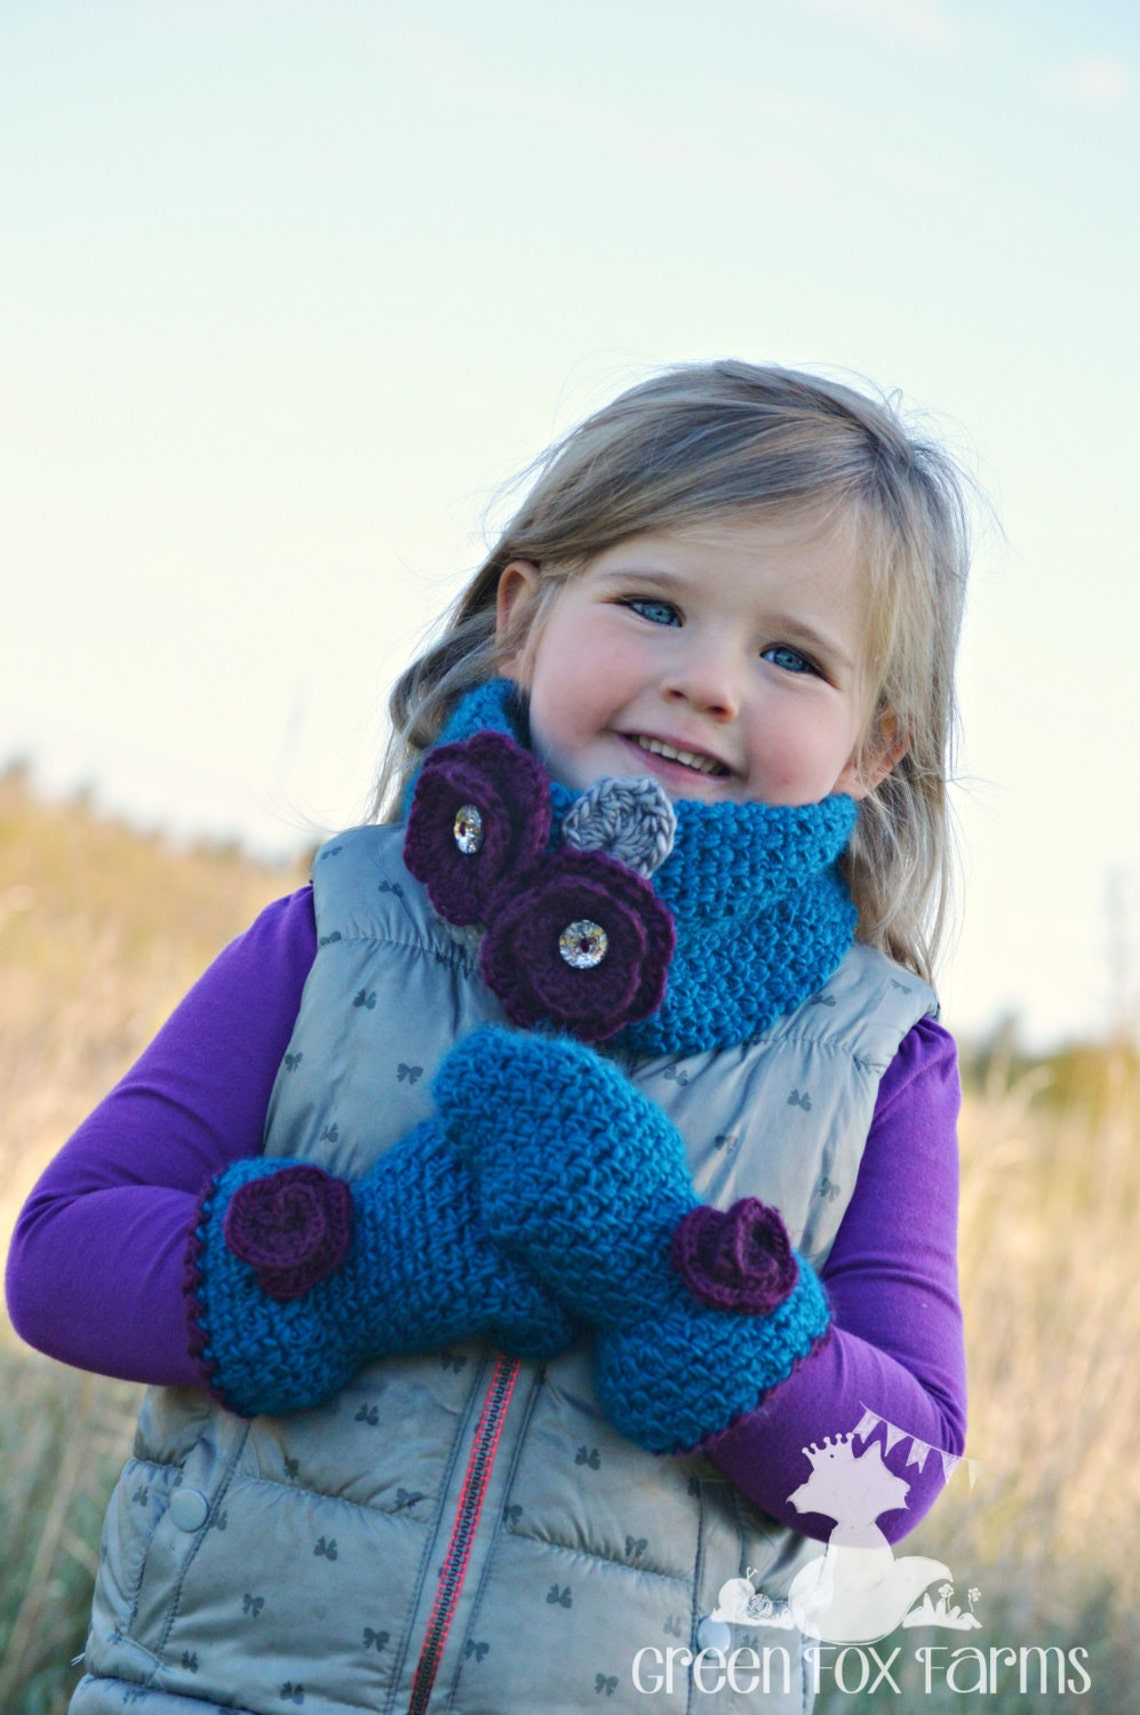 b344244b53a Flower Cowl Mittens Warmer Mittens Set Teal Neck Warmer Set